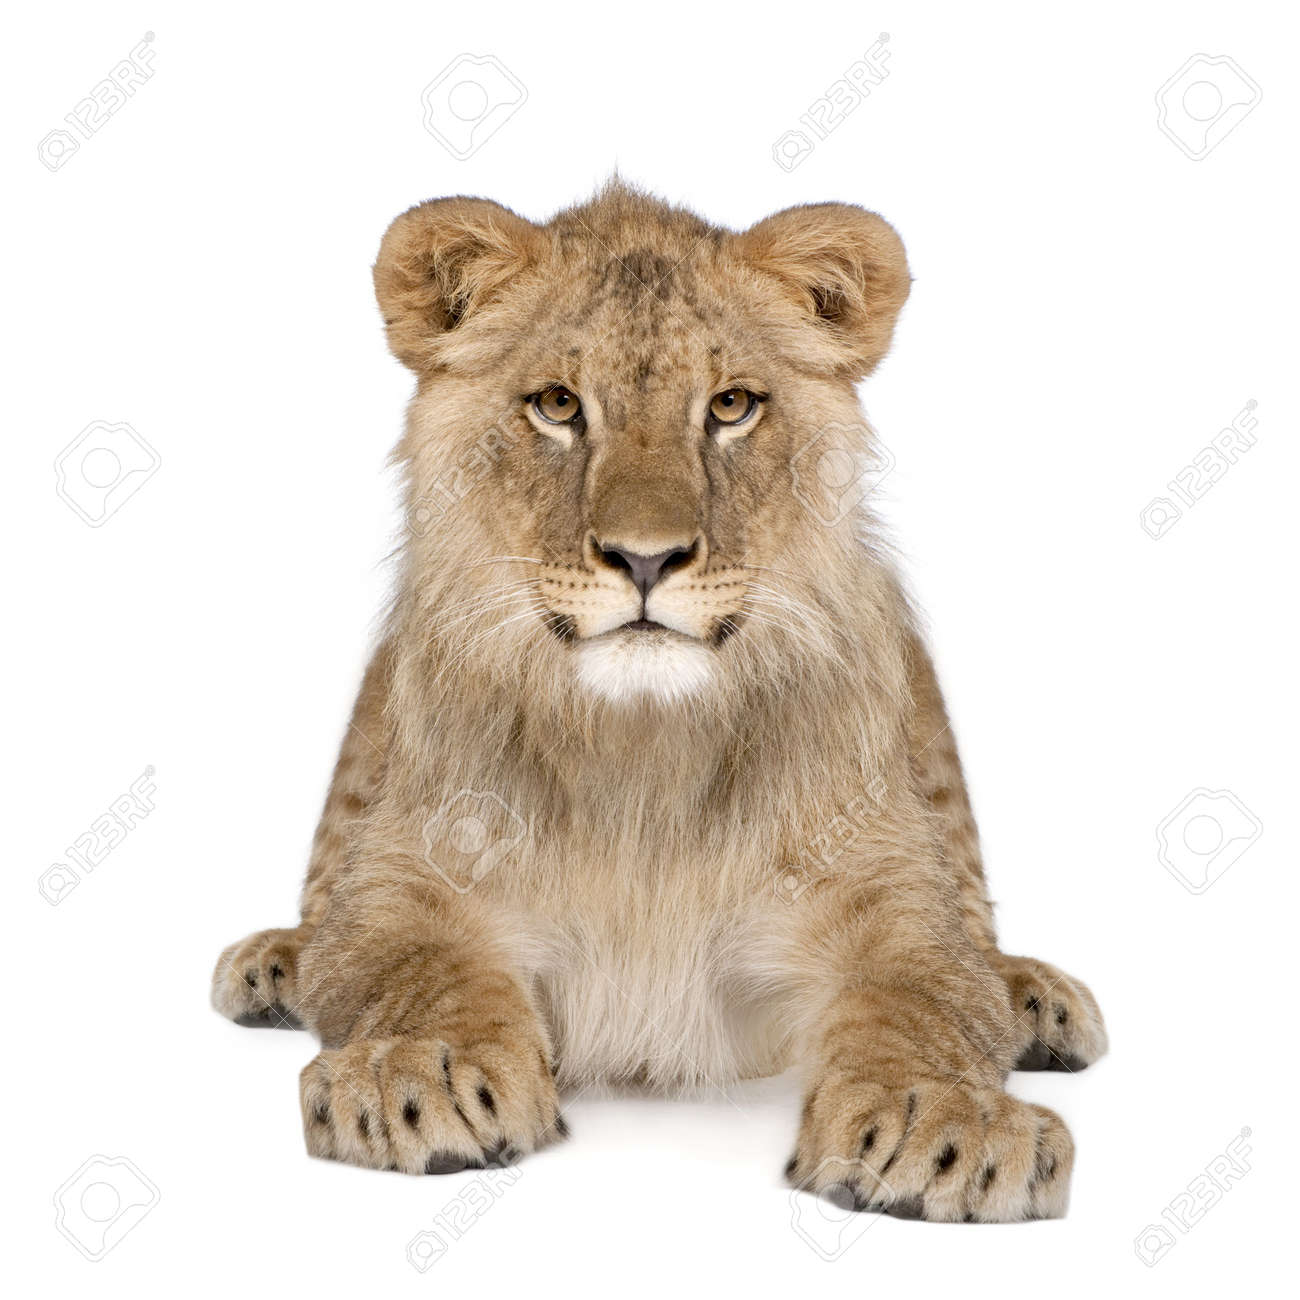 Portrait of lion cub, Panthera leo, 8 months old, sitting in front of white background, studio shot Stock Photo - 5912012